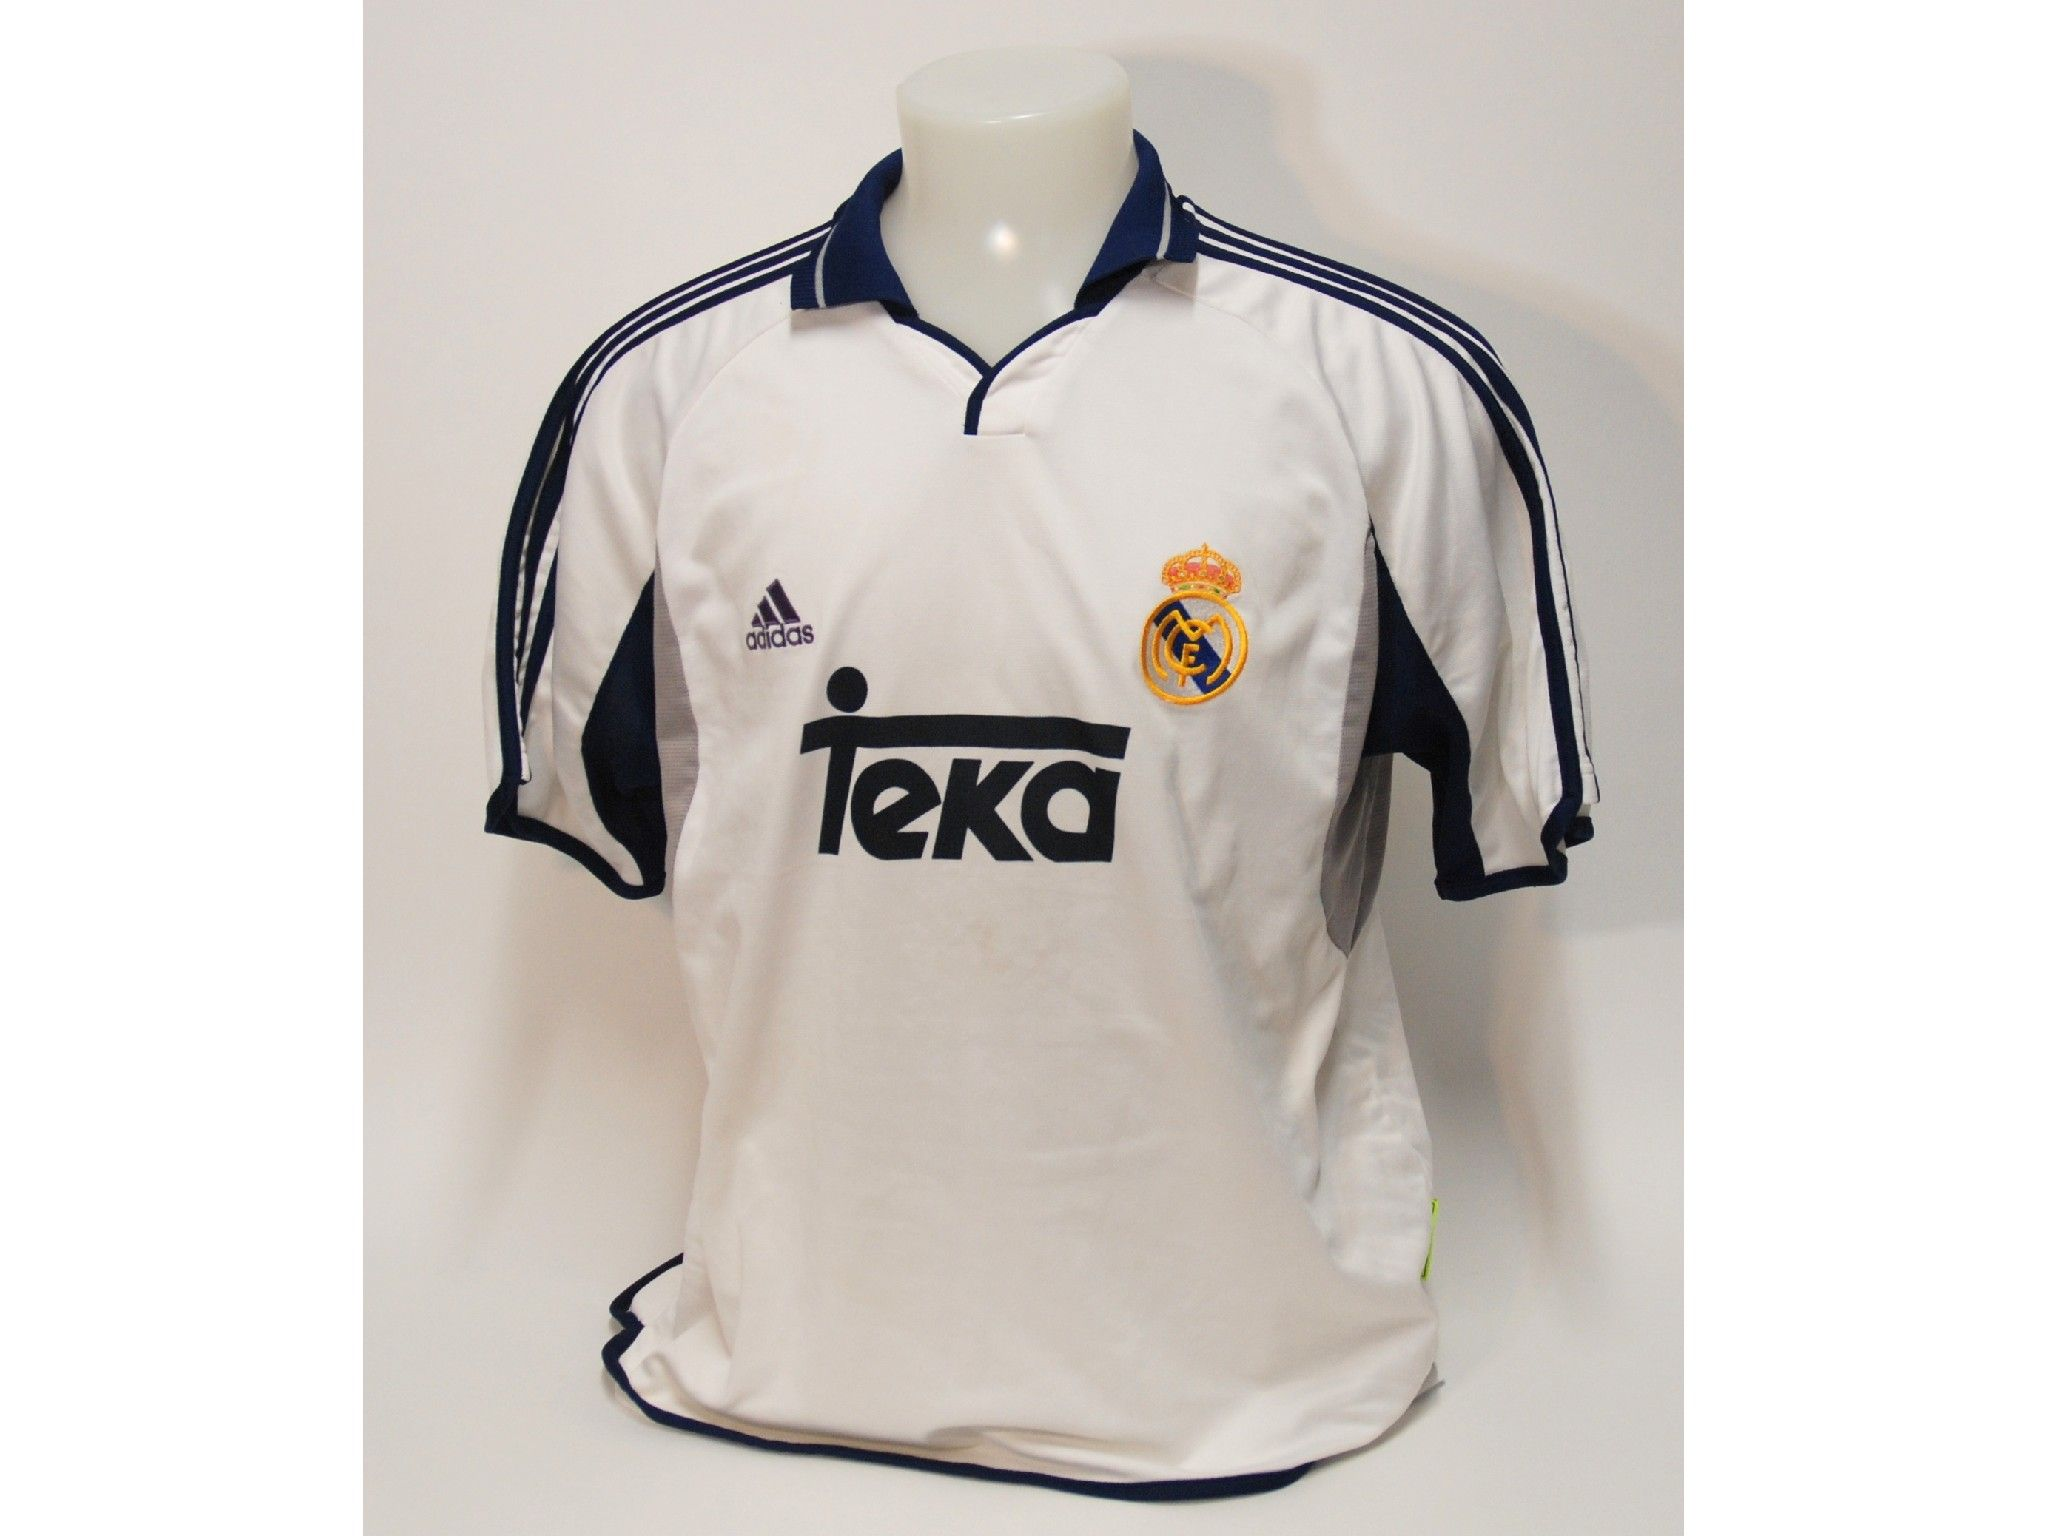 best loved aa81b c6819 Real Madrid. 2000 - 2001 Home. #adidas #real #merengue ...